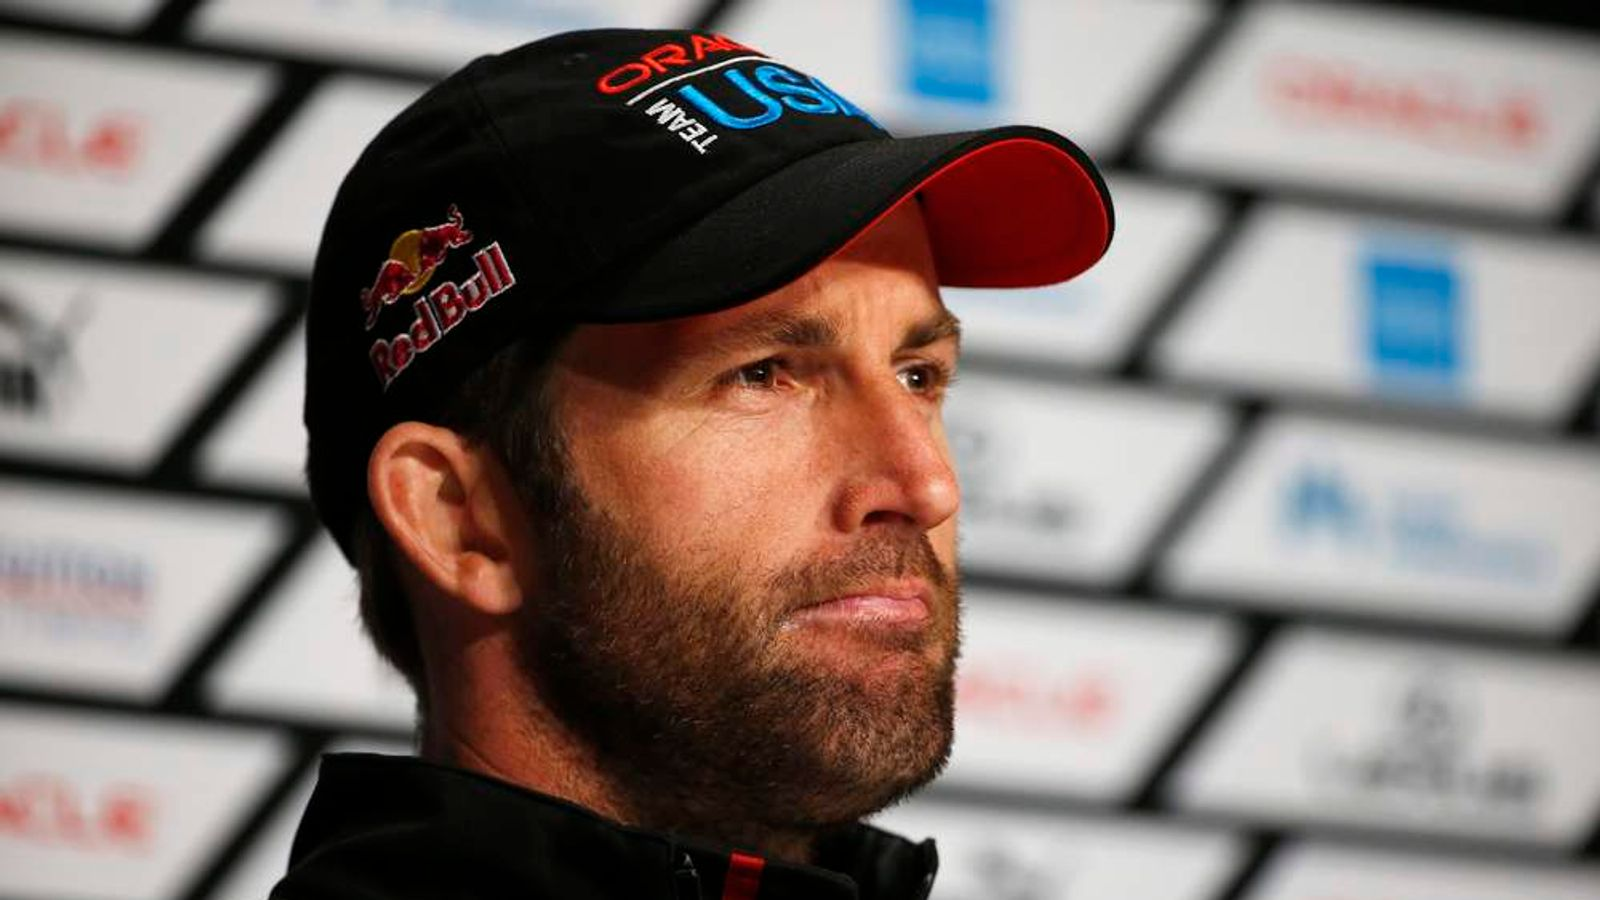 Oracle Team USA tactician Ainslie speaks to members of the media after winning Race 18 of the 34th America's Cup yacht sailing race against Emirates Team New Zealand in San Francisco